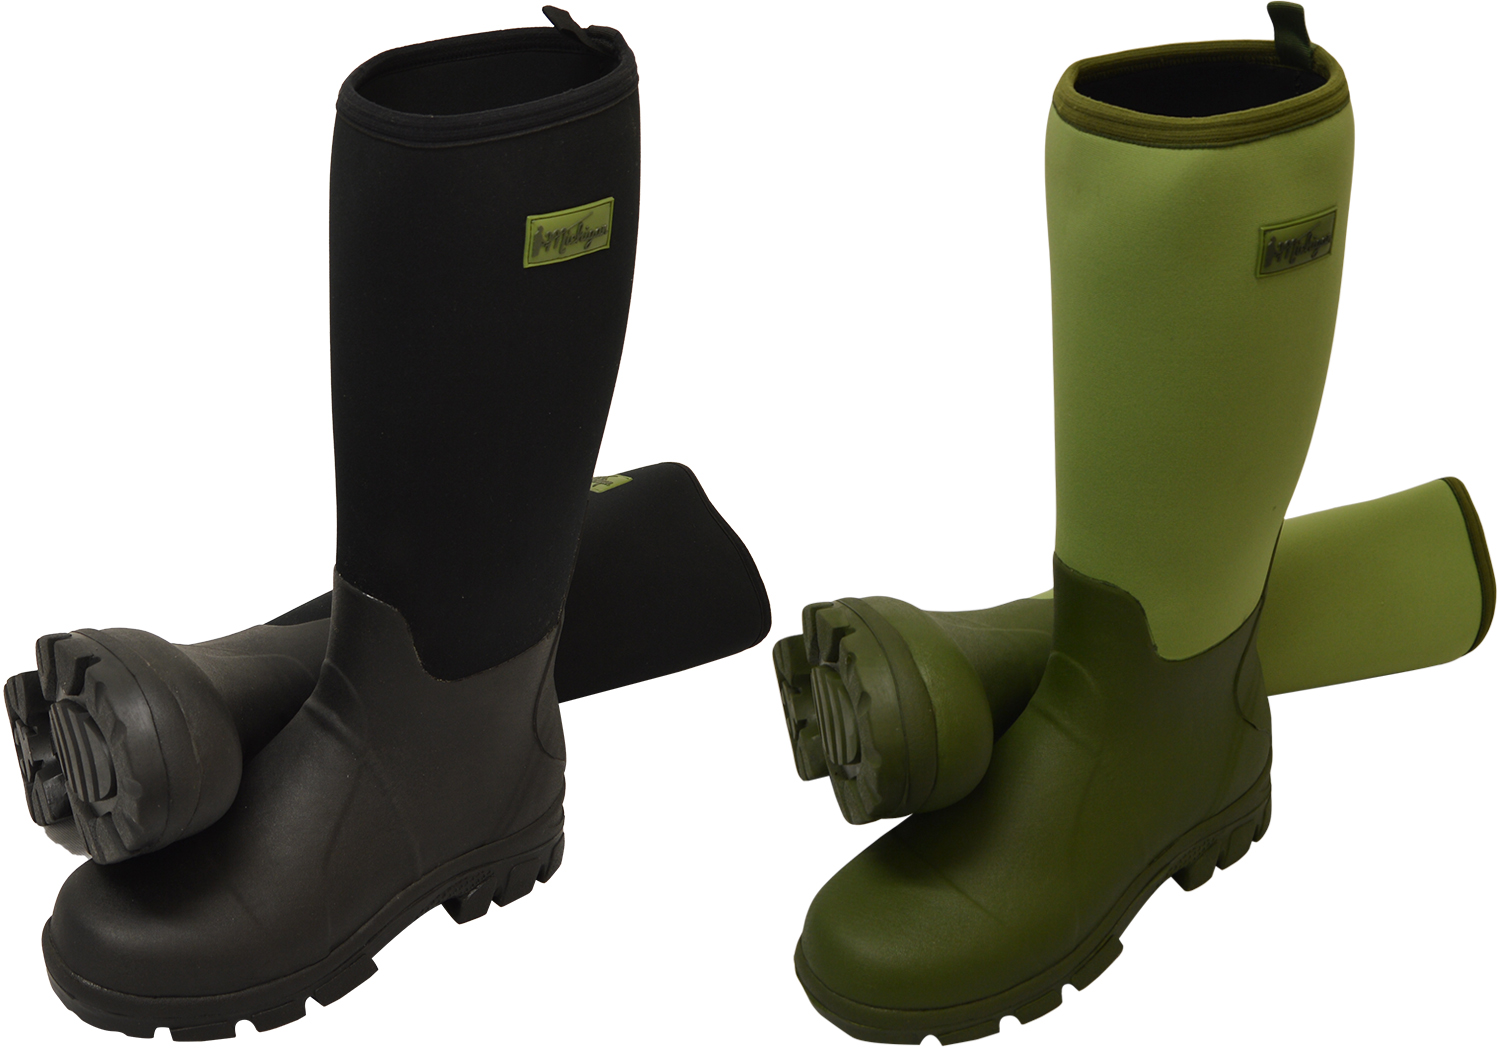 Michigan Neoprene Waterproof Wellington Muck Field Fishing Boots ...